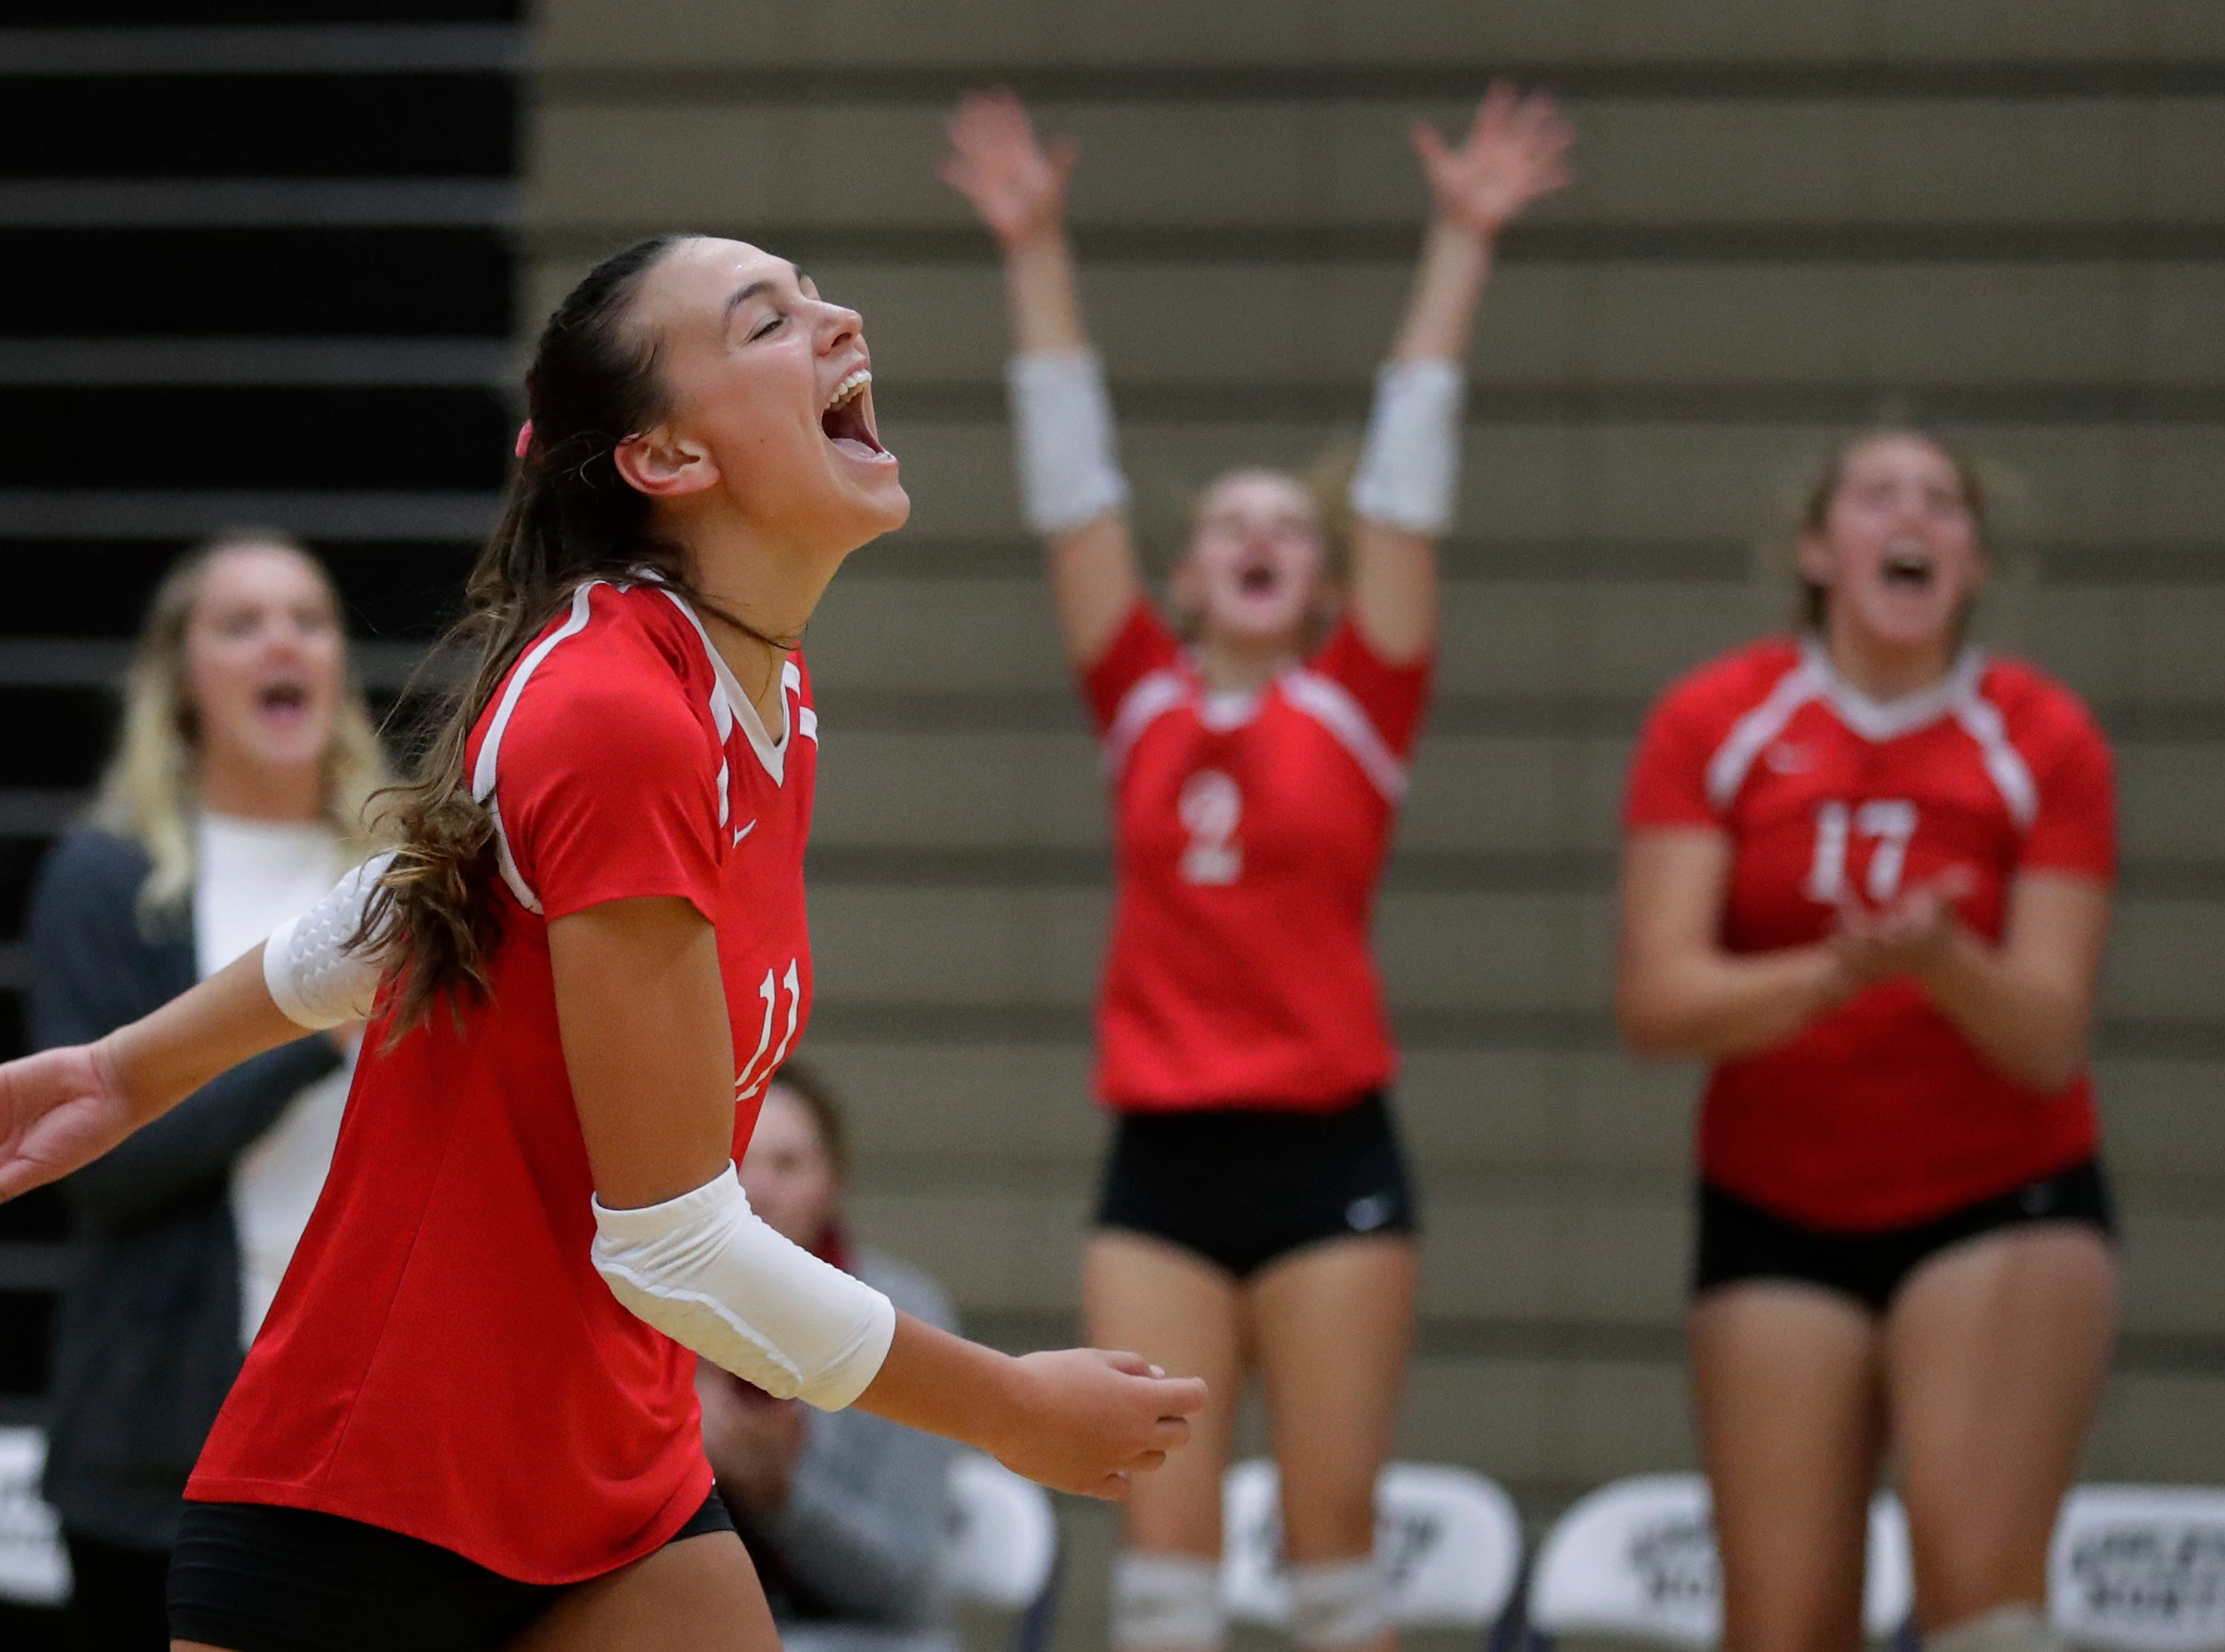 Kimberly High School's Maggie Cartwright (11) celebrates winning a point against Appleton North High School during their girls volleyball match Thursday, Sept. 27, 2018, in Appleton, Wis. Dan Powers/USA TODAY NETWORK-Wisconsin